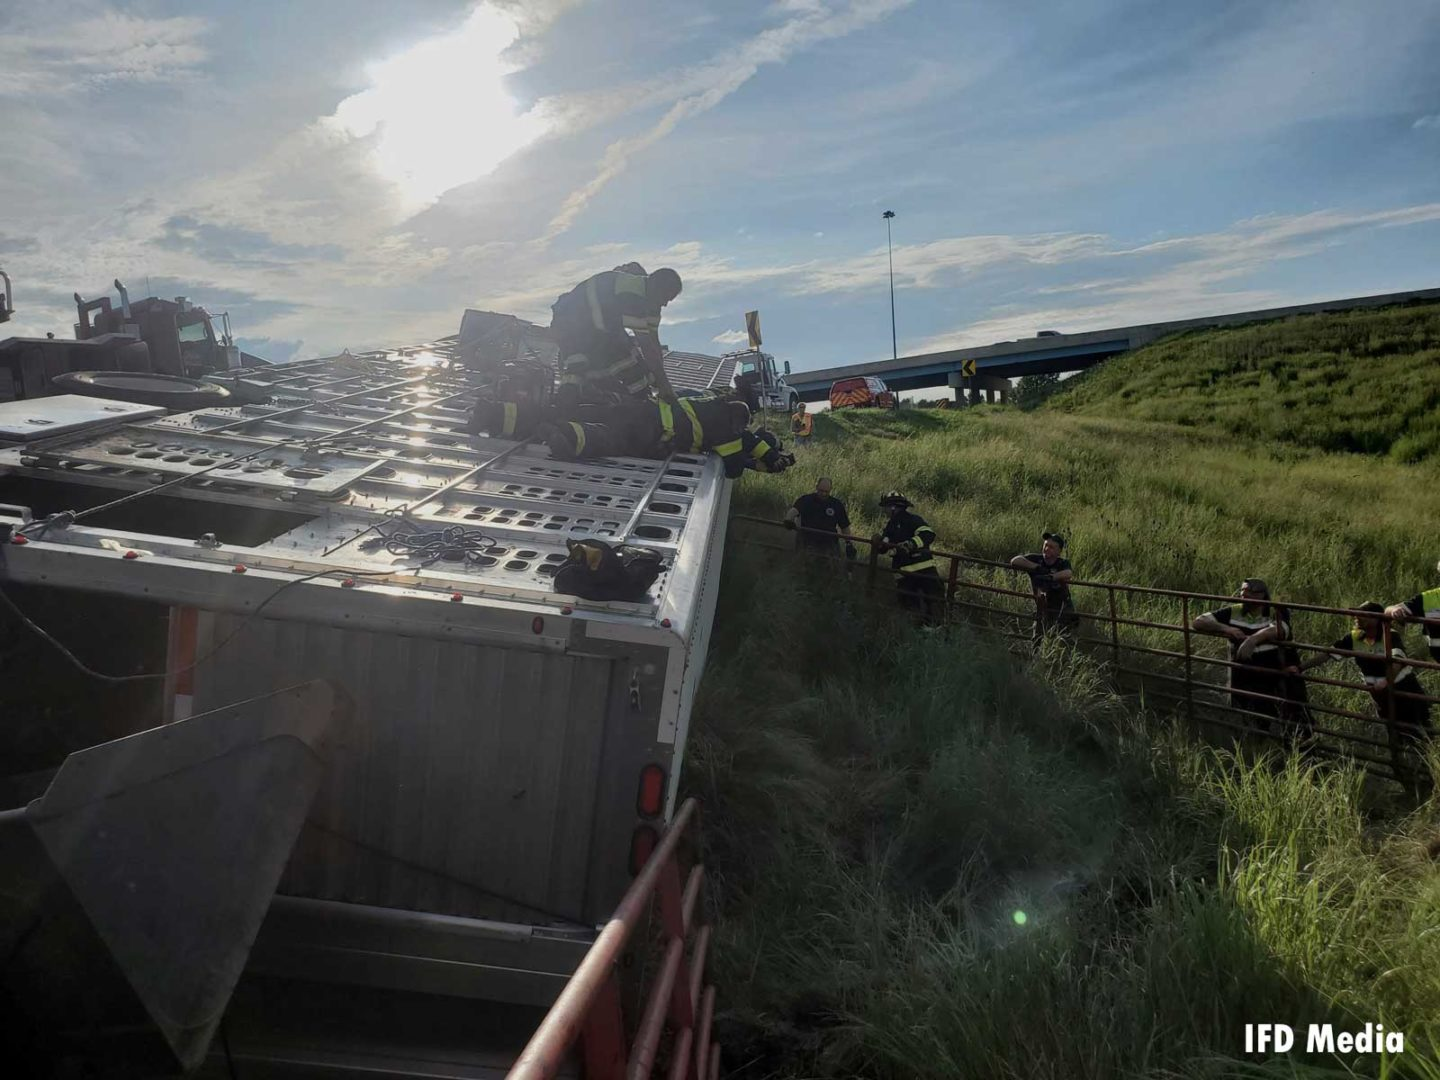 Firefighters work on the roof of the overturned trailer